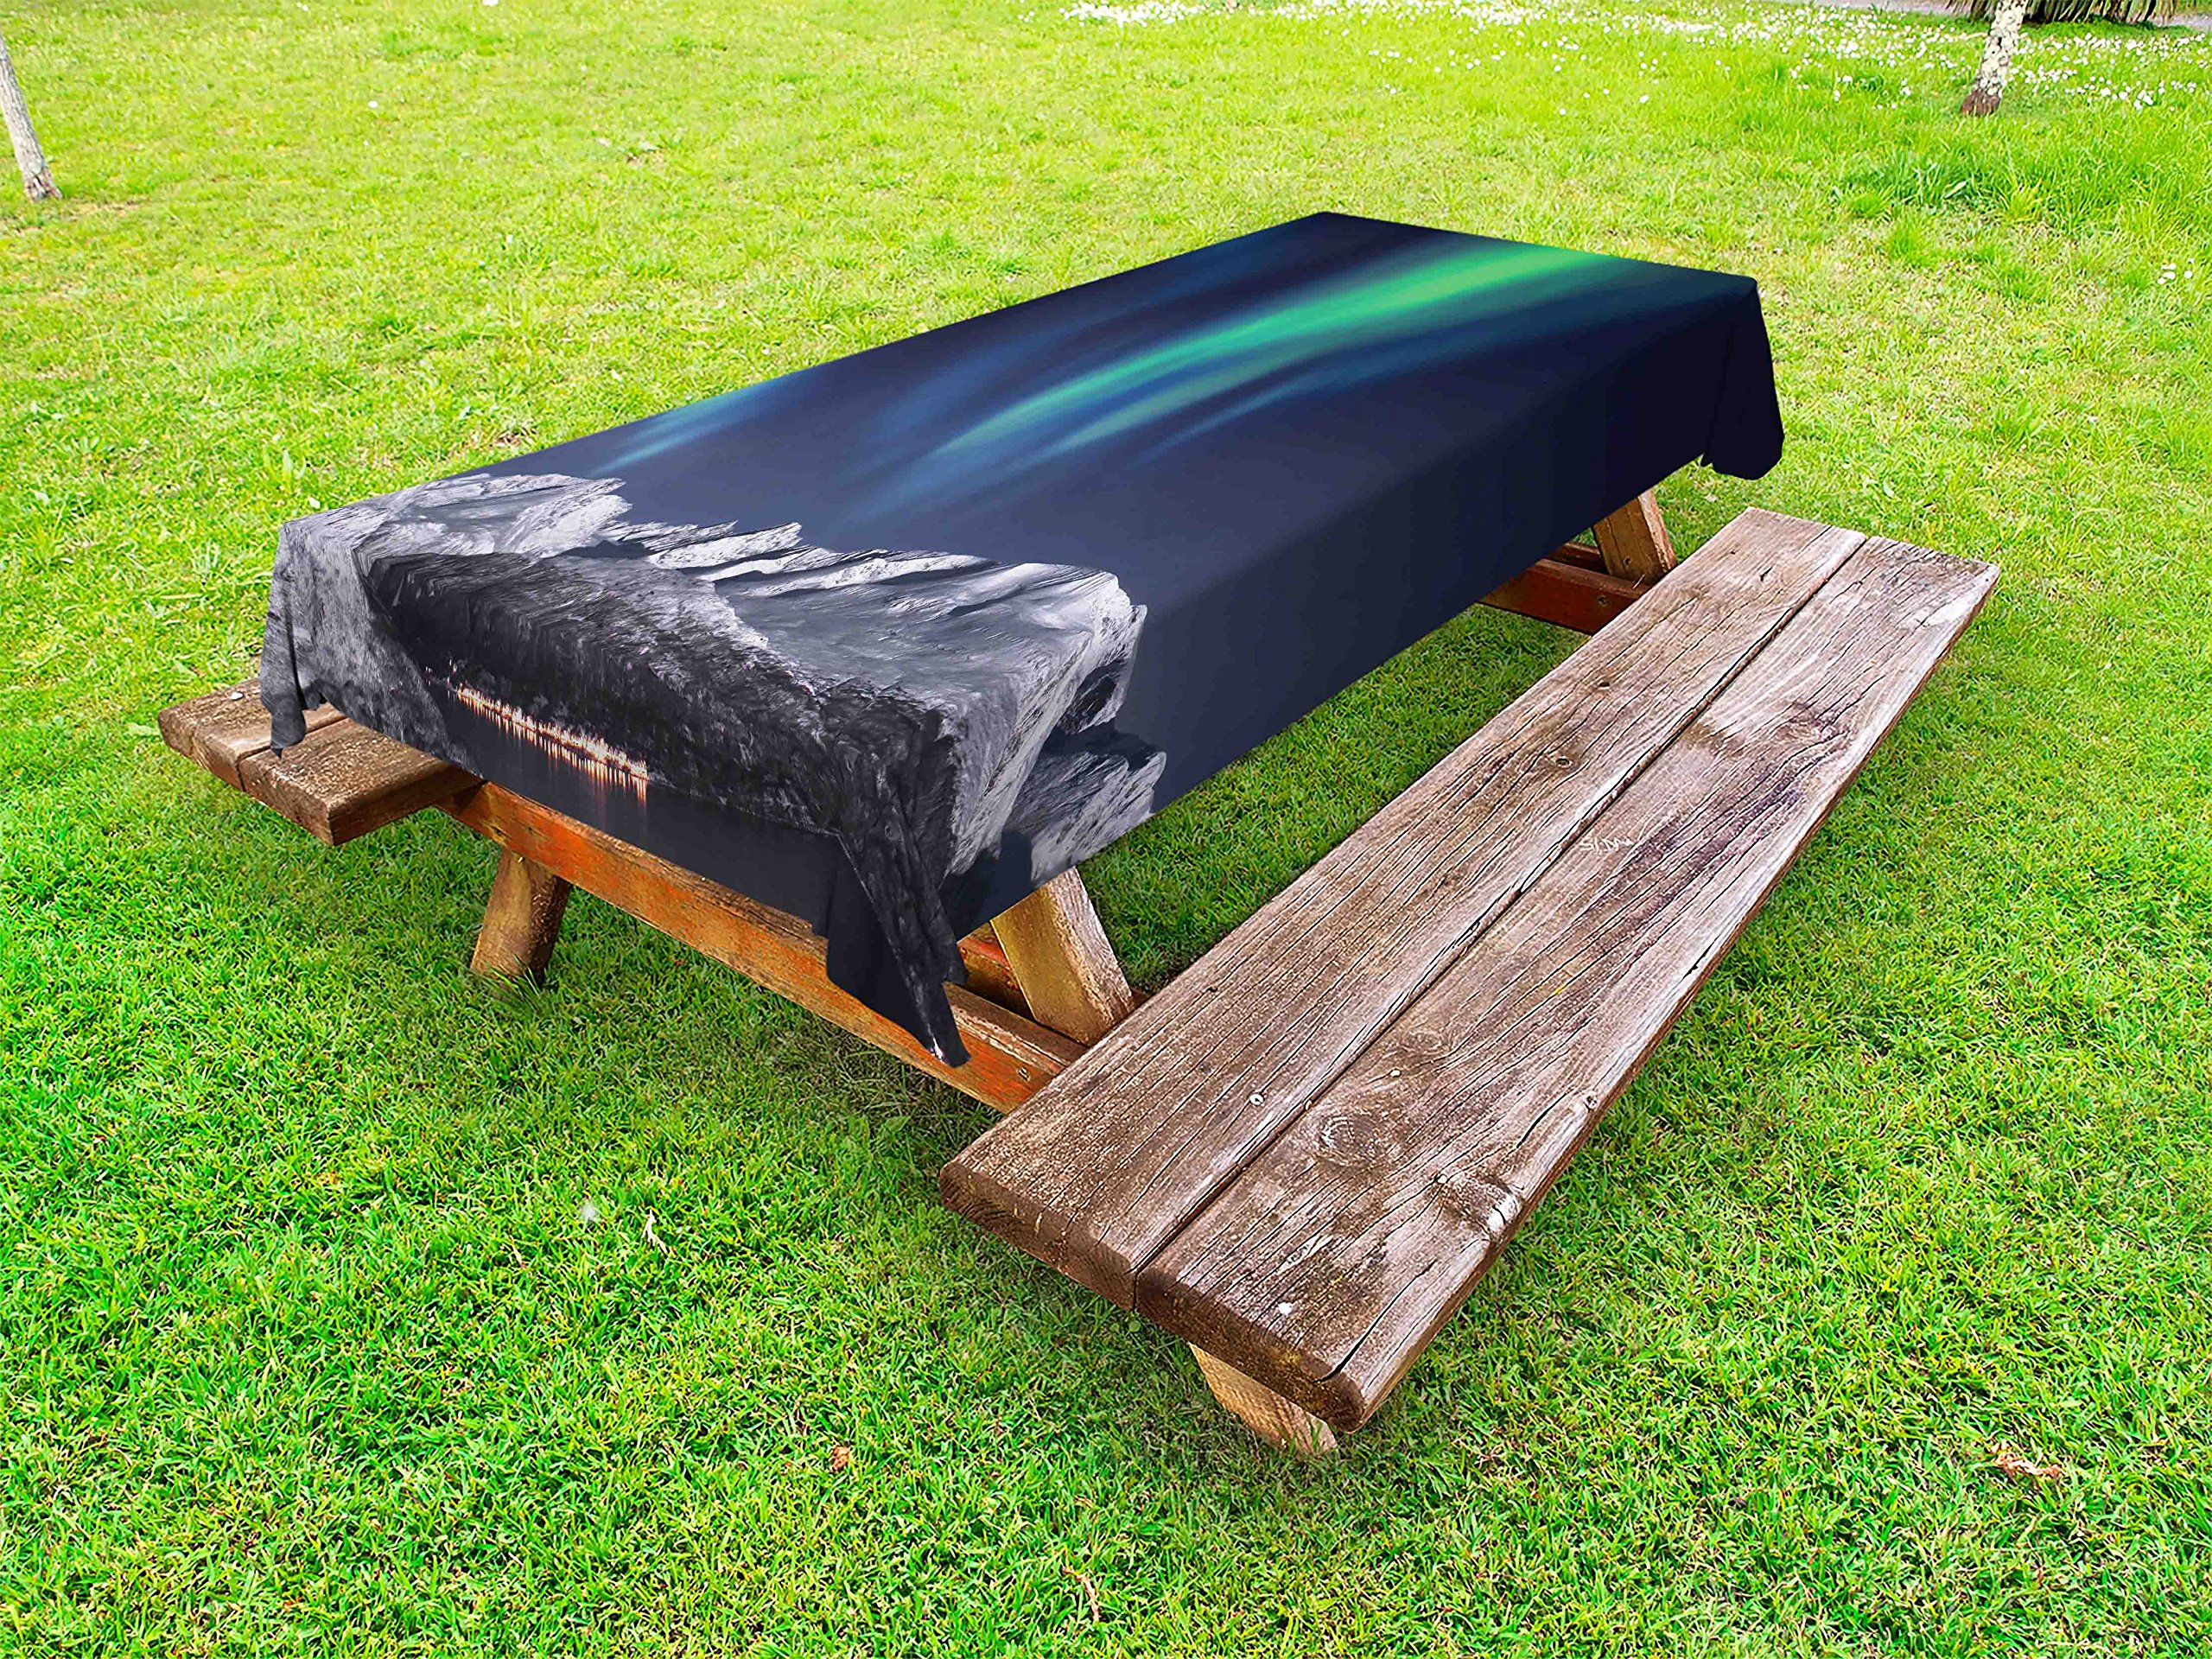 Ambesonne Sky Outdoor Tablecloth, Aurora Borealis Aurora Over Fjords Mountain at Night Norway Solar Image Artwork, Decorative Washable Picnic Table Cloth, 58 X 120 inches, Green Dark Blue